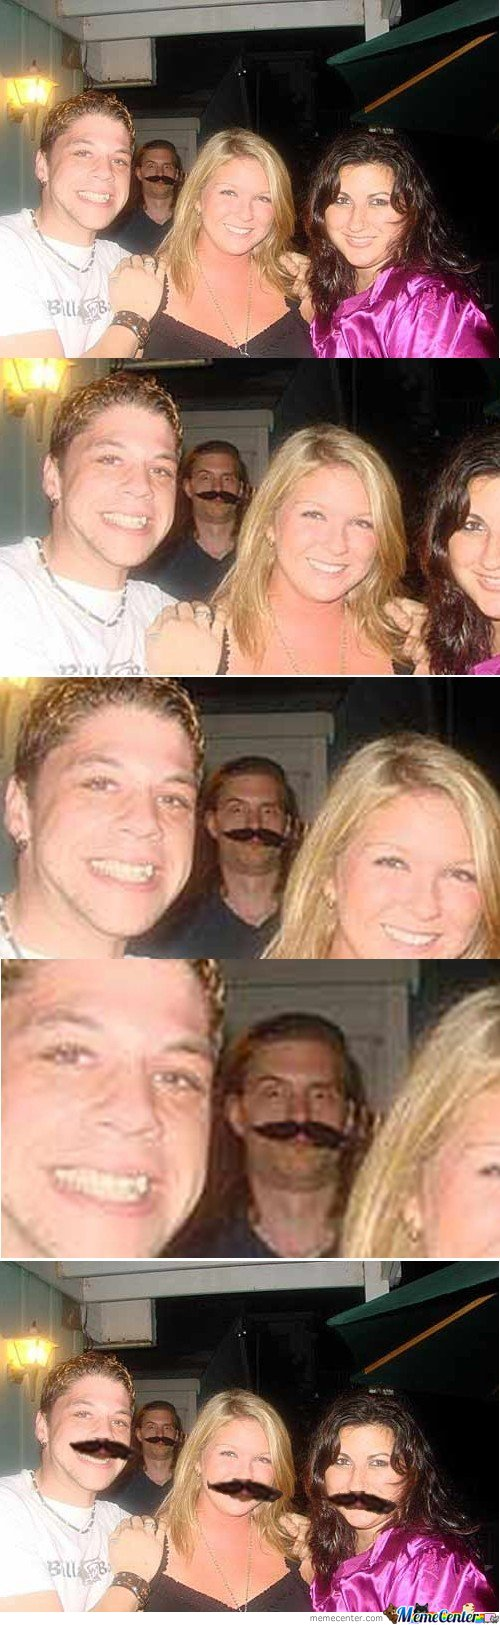 Photobomb Lvl: Moustache